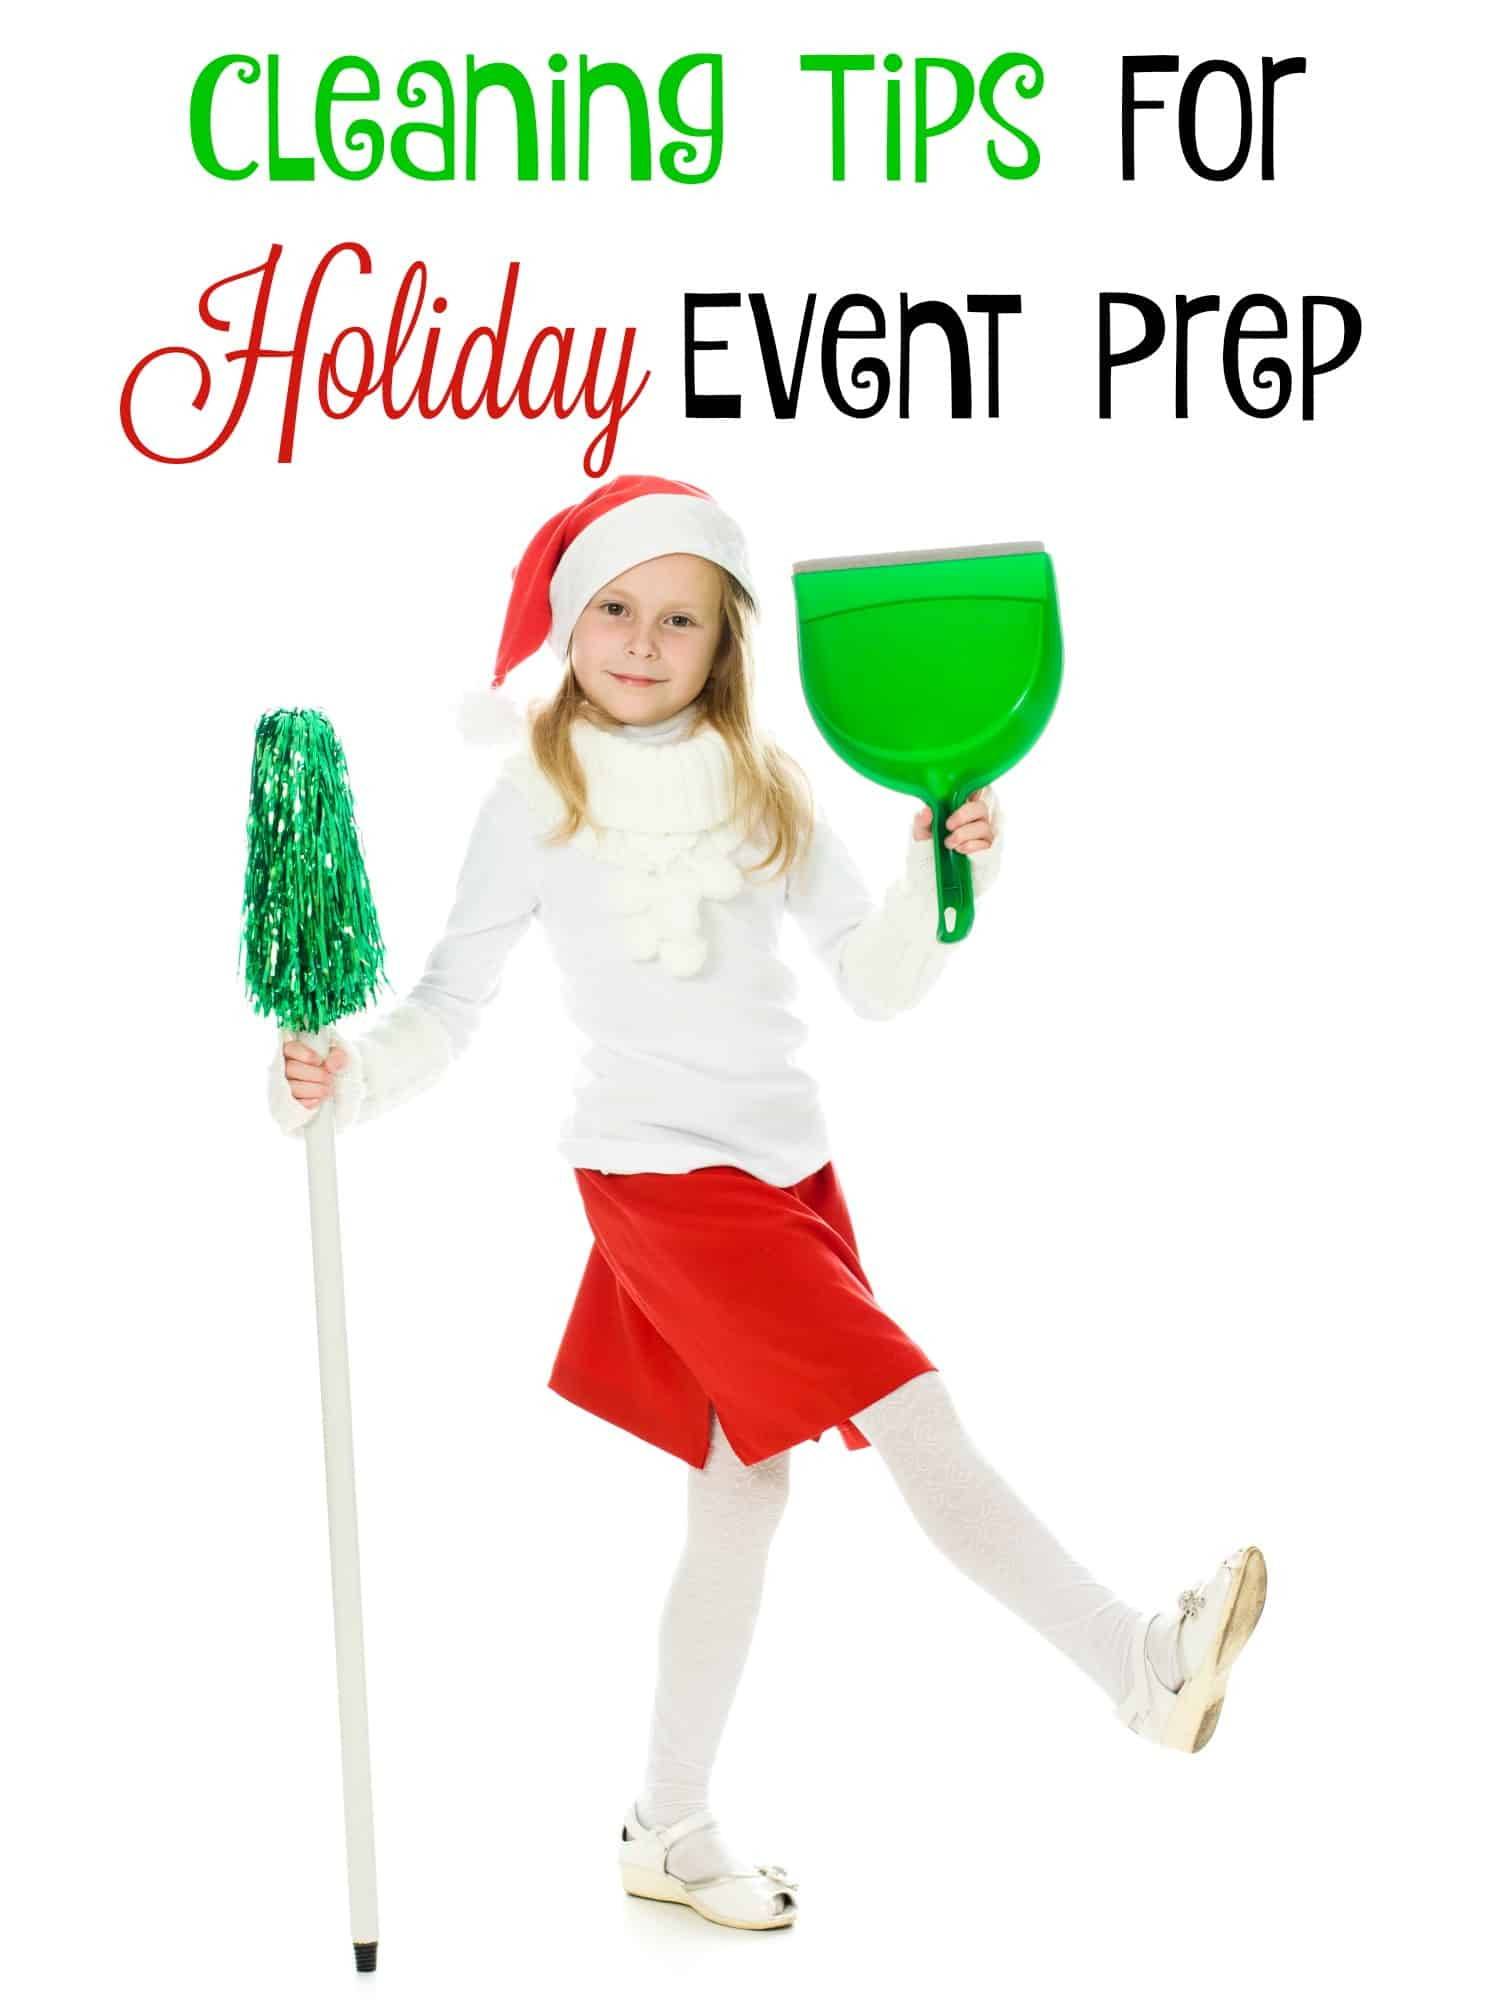 Cleaning Tips For Holiday Event Prep